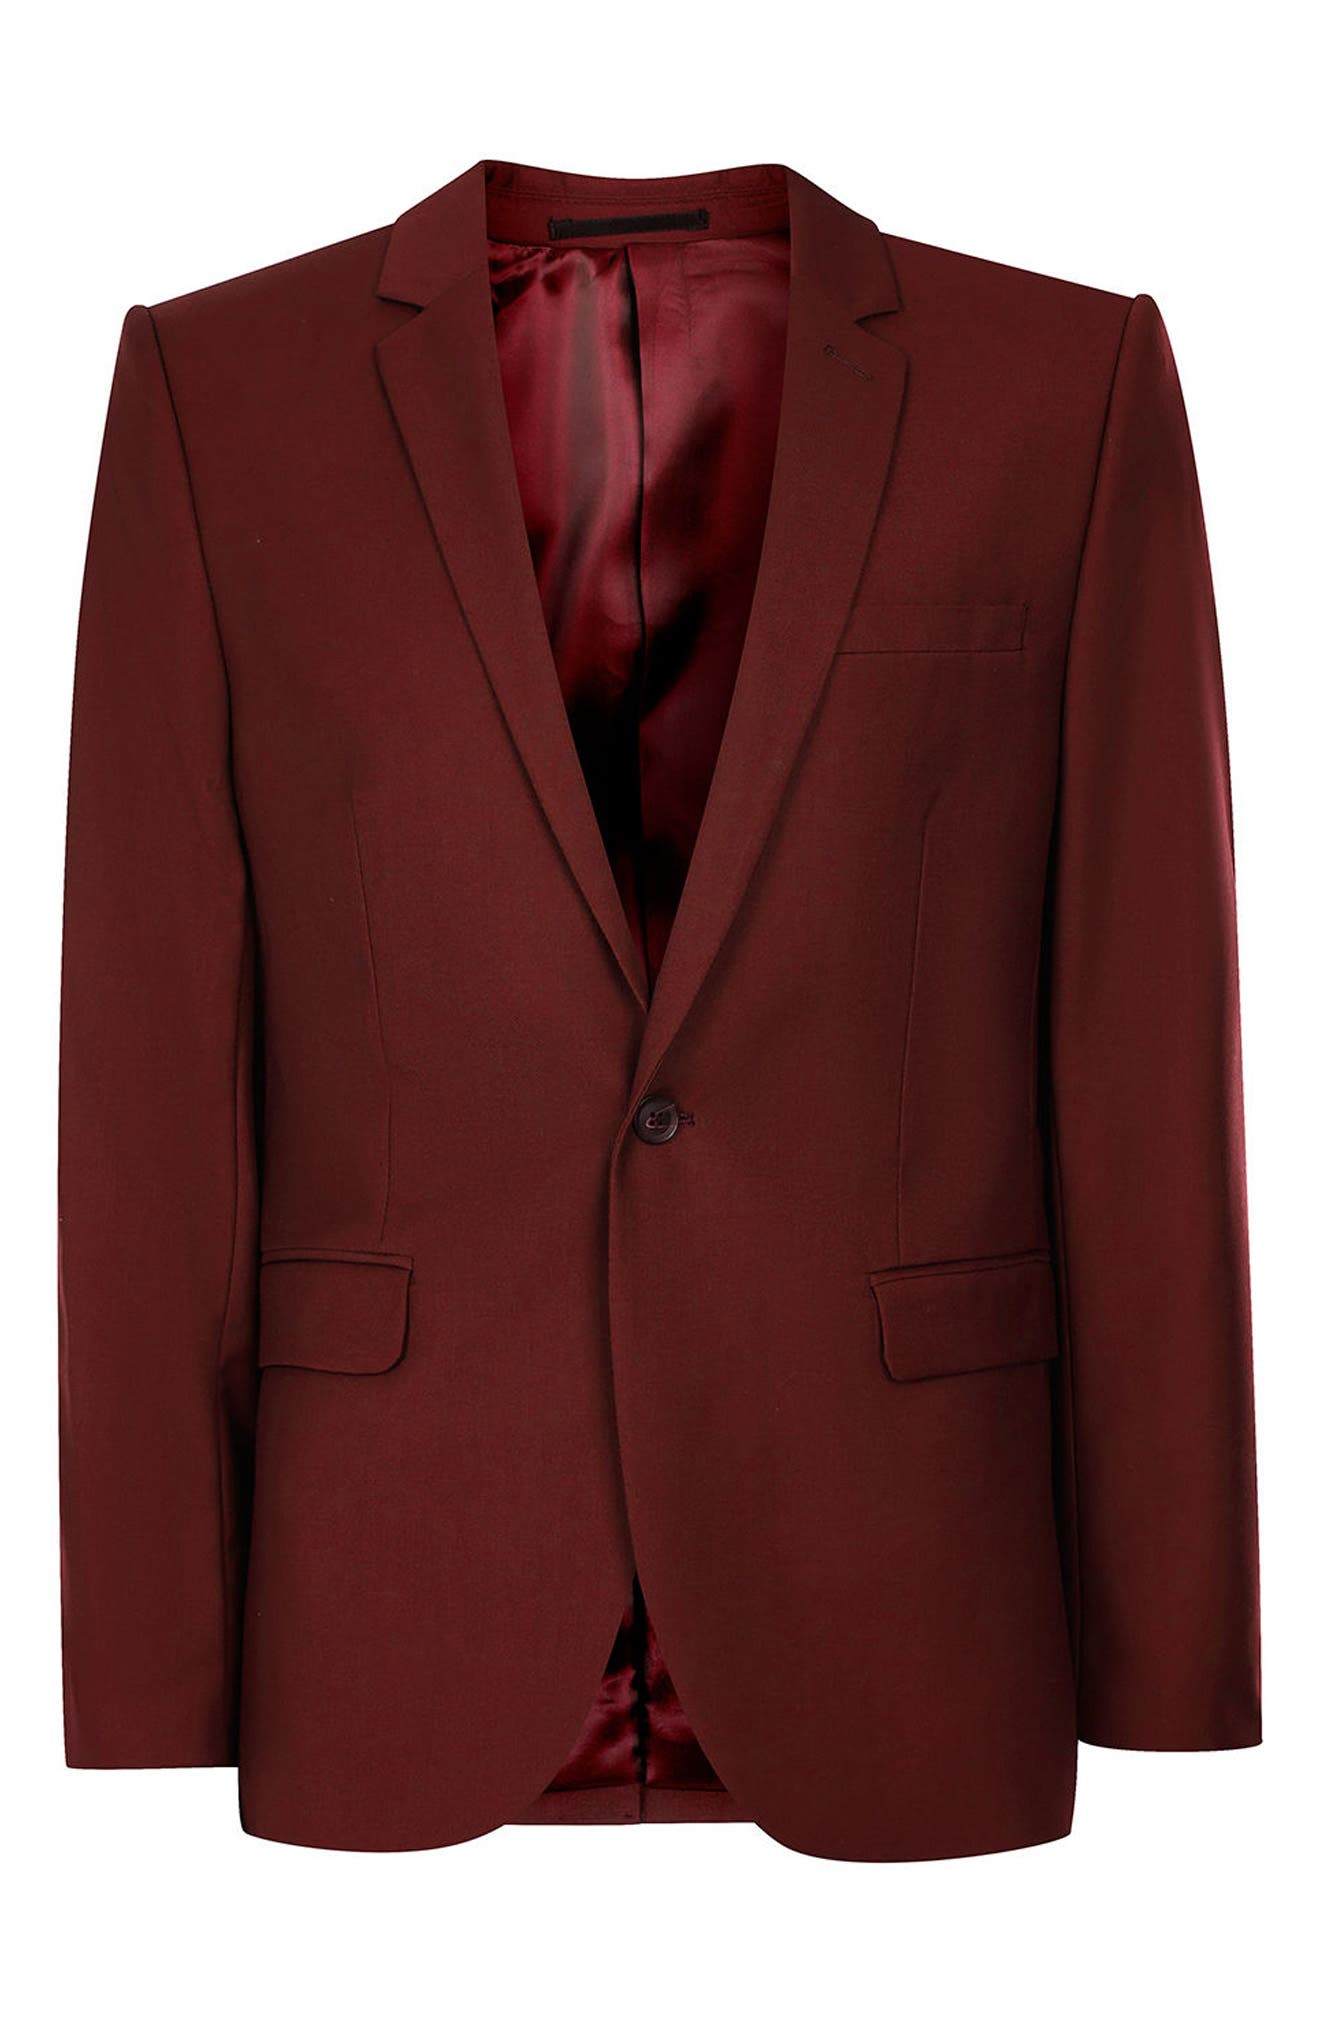 Skinny Fit Suit Jacket,                             Alternate thumbnail 6, color,                             Burgundy